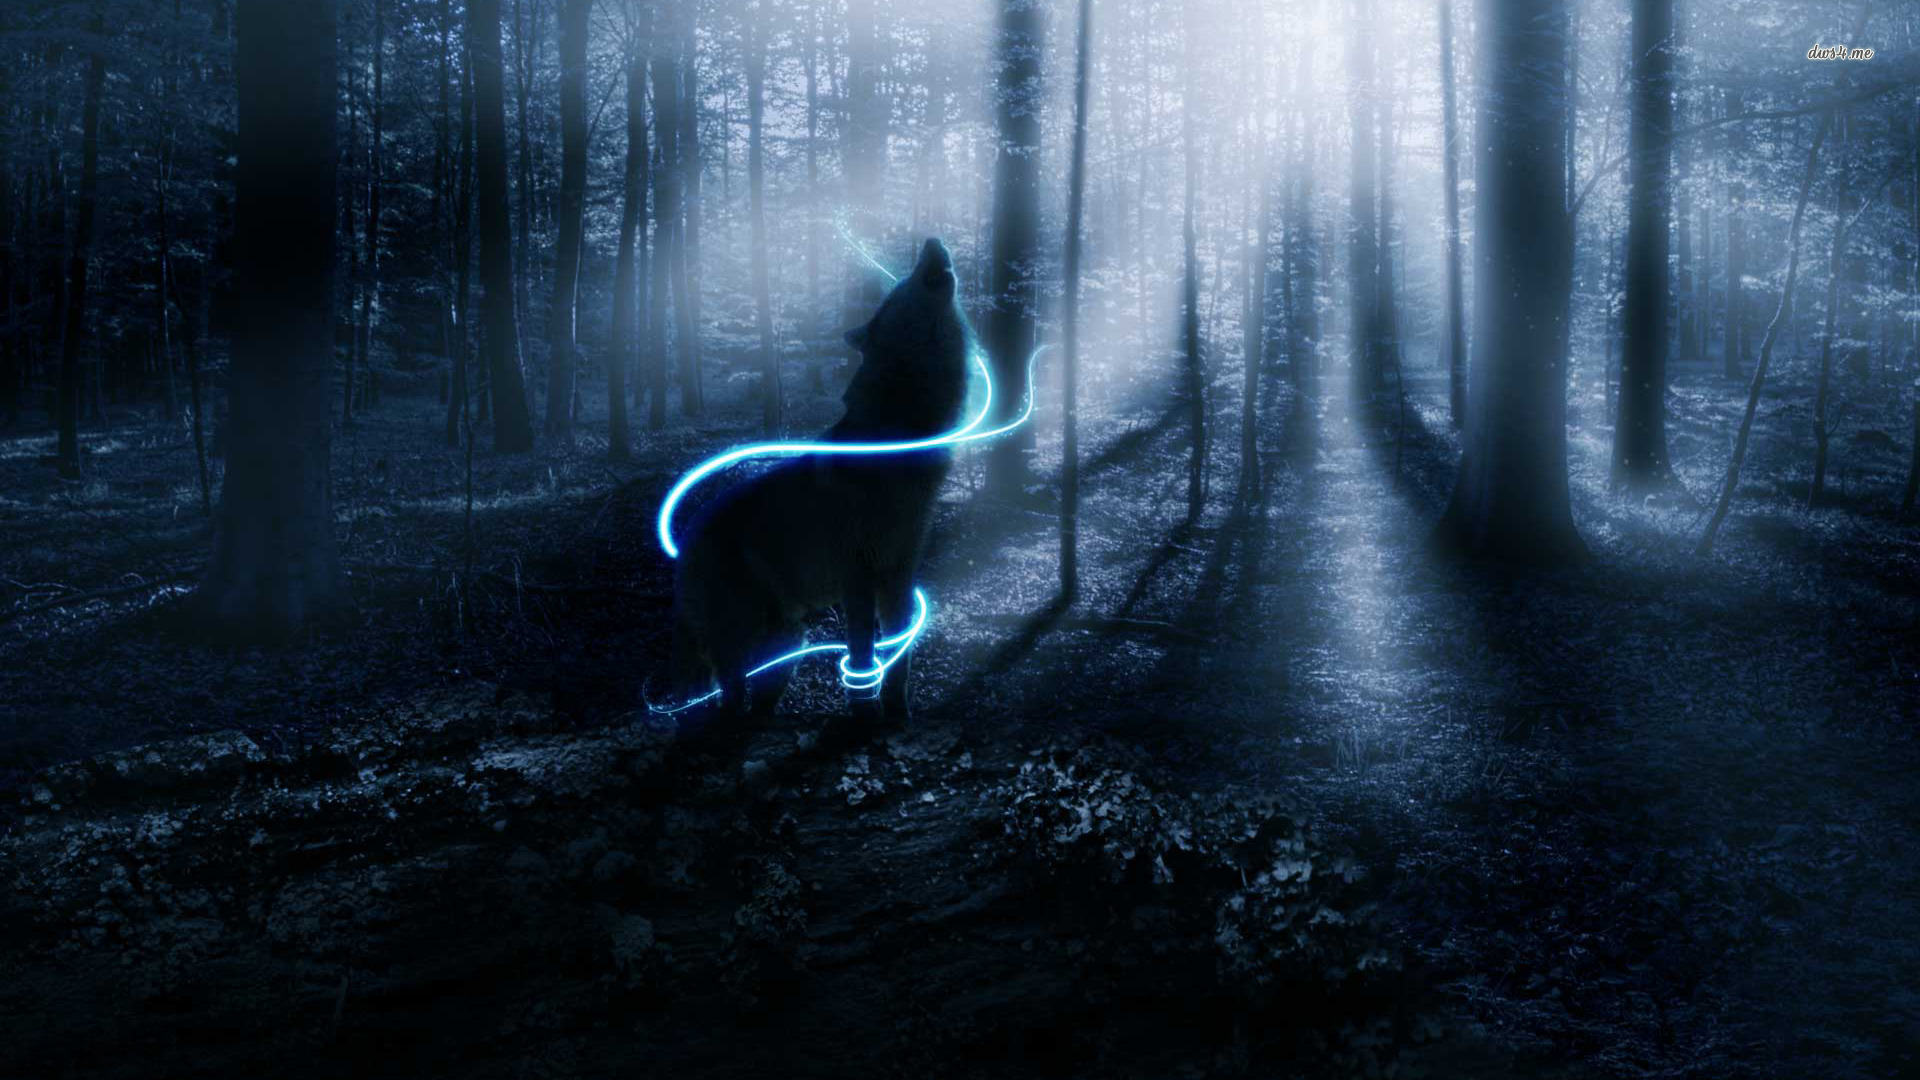 Wolf wallpaper   lobos wallpaper 32901744   fanpop 1920x1080